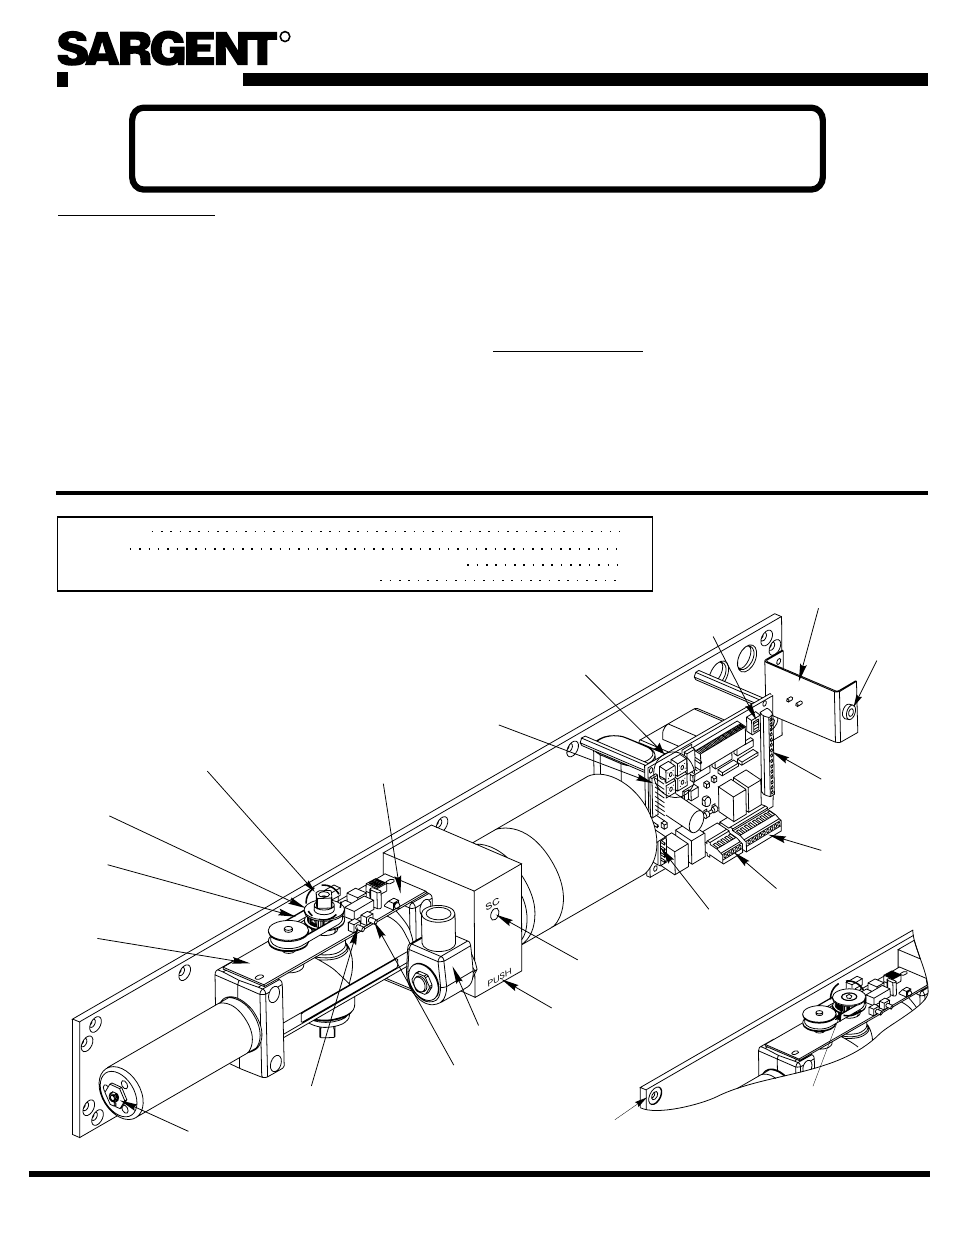 sargent mpower 4000 user manual 15 pages rh manualsdir com sargent harmony h1 wiring diagram sargent m56 wiring diagram